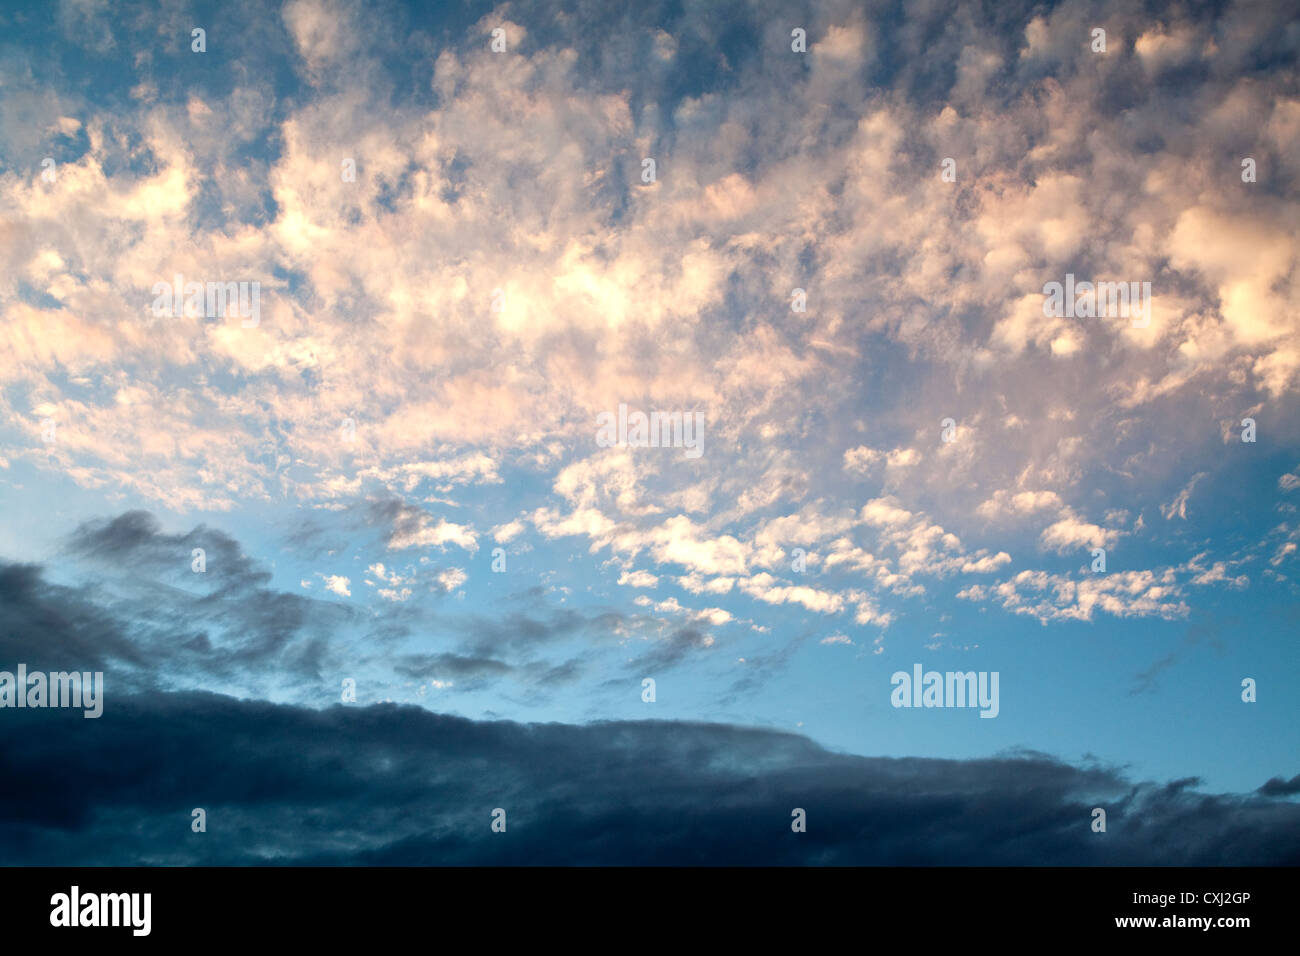 Altocumulus clouds with dark stratus cloud beneath near sunset Stock Photo